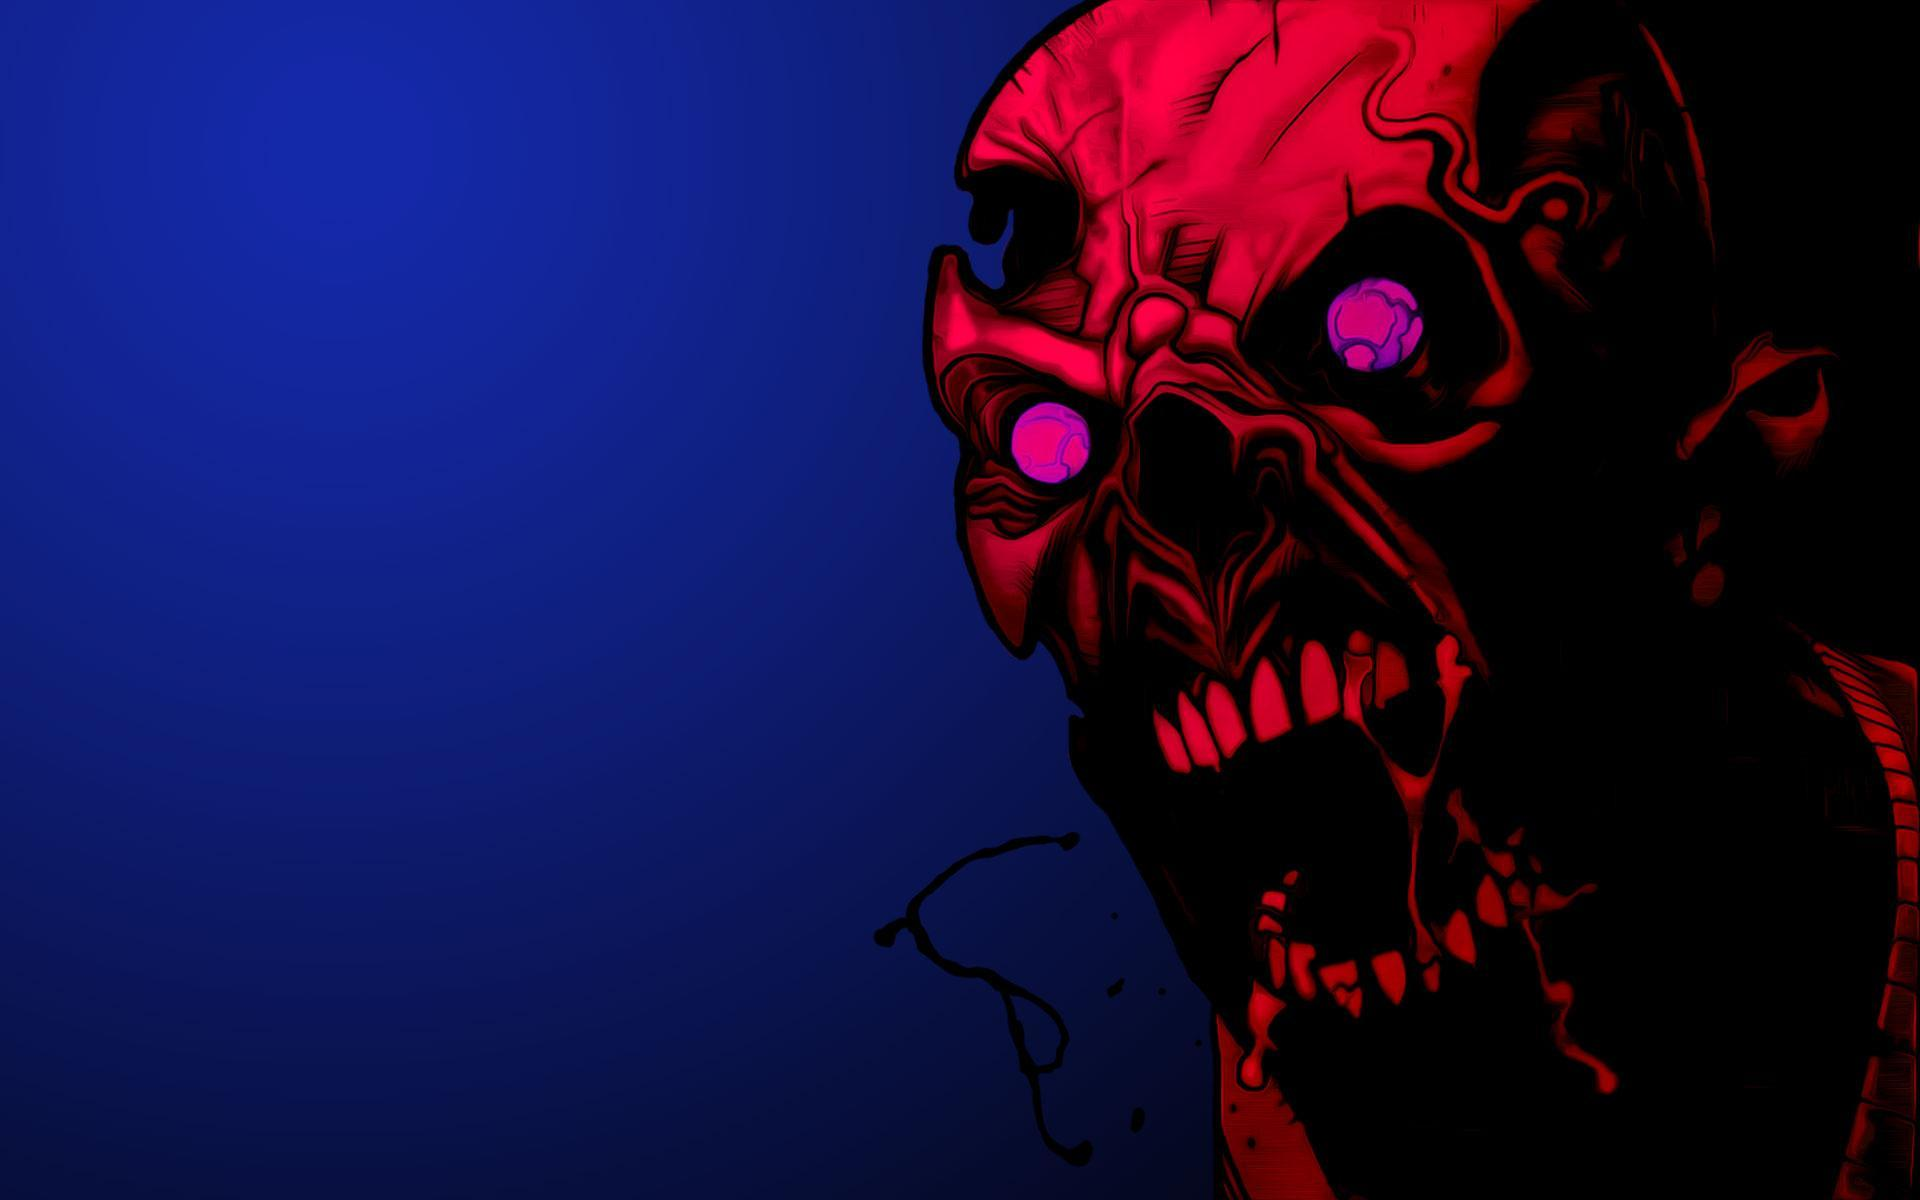 Zombie Live Wallpaper for Android - APK Download